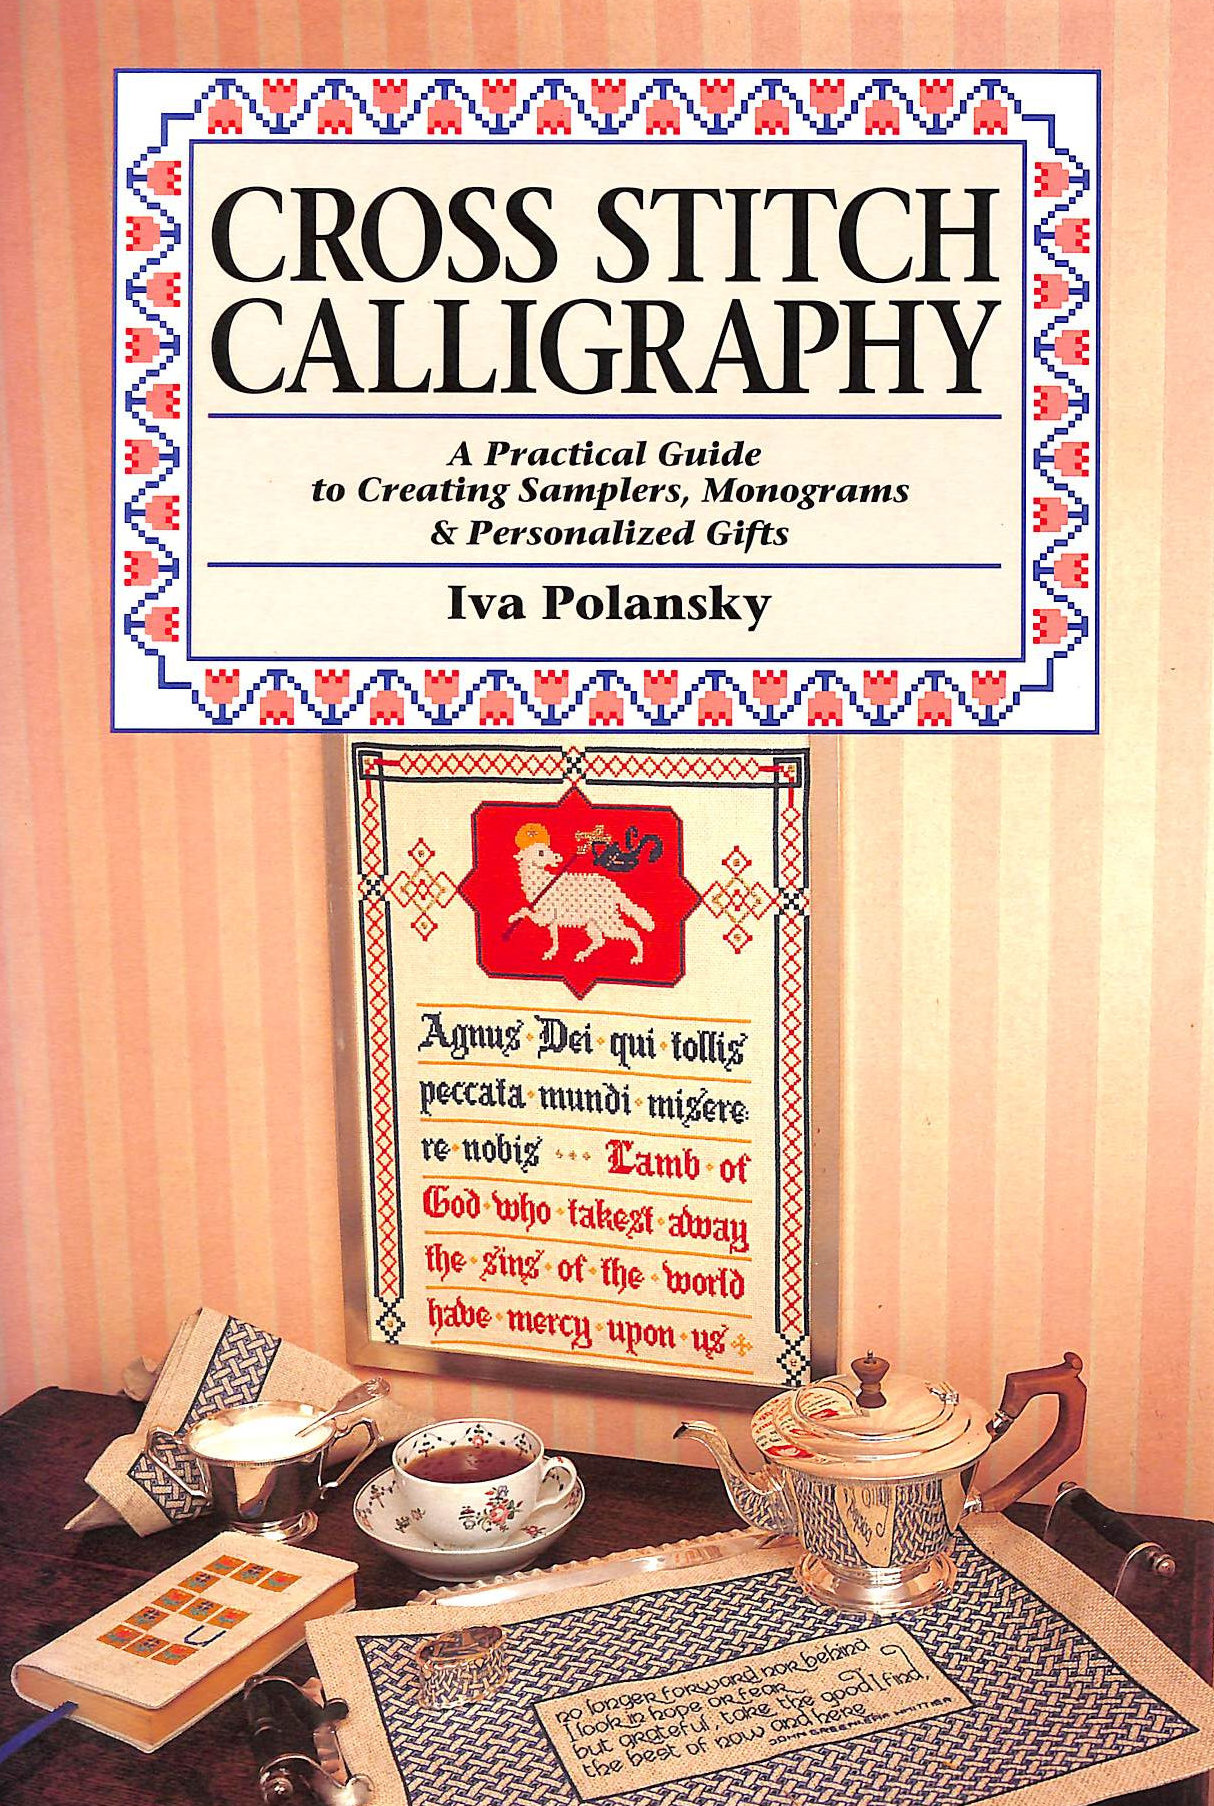 Image for Cross Stitch Calligraphy: A Practical Guide to Creating Samplers, Monograms and Personalized Gifts